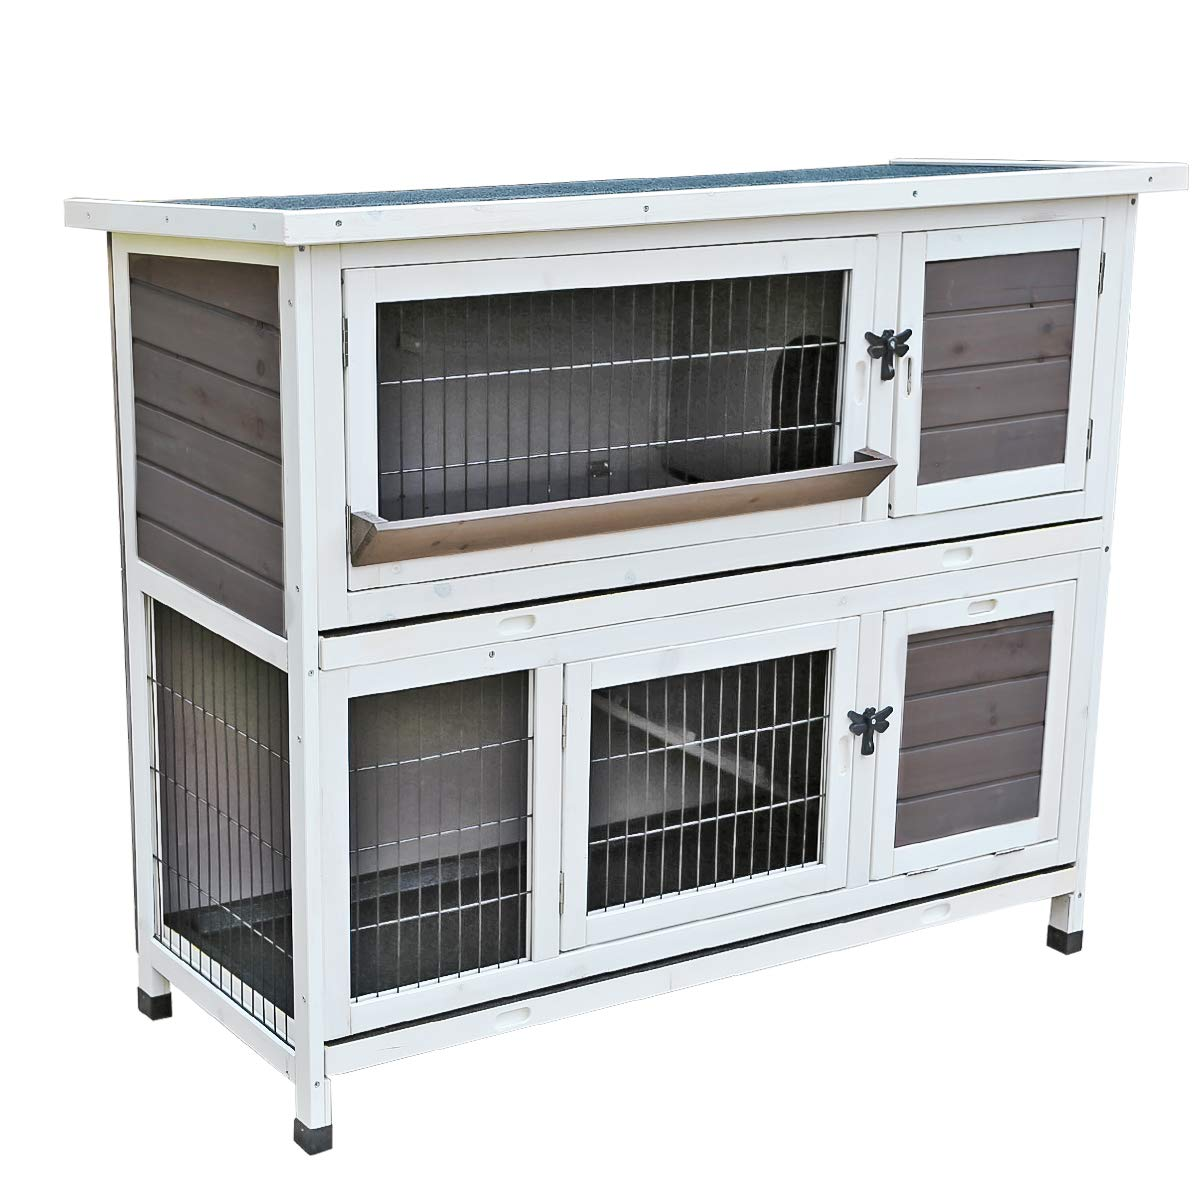 Yardeen Rabbit Hutch Wooden Pet Two Story Wood Bunny Cage Indoor Outdoor for Small Animals. 44''(L) x 19.6''(W) x 39.7''(H)